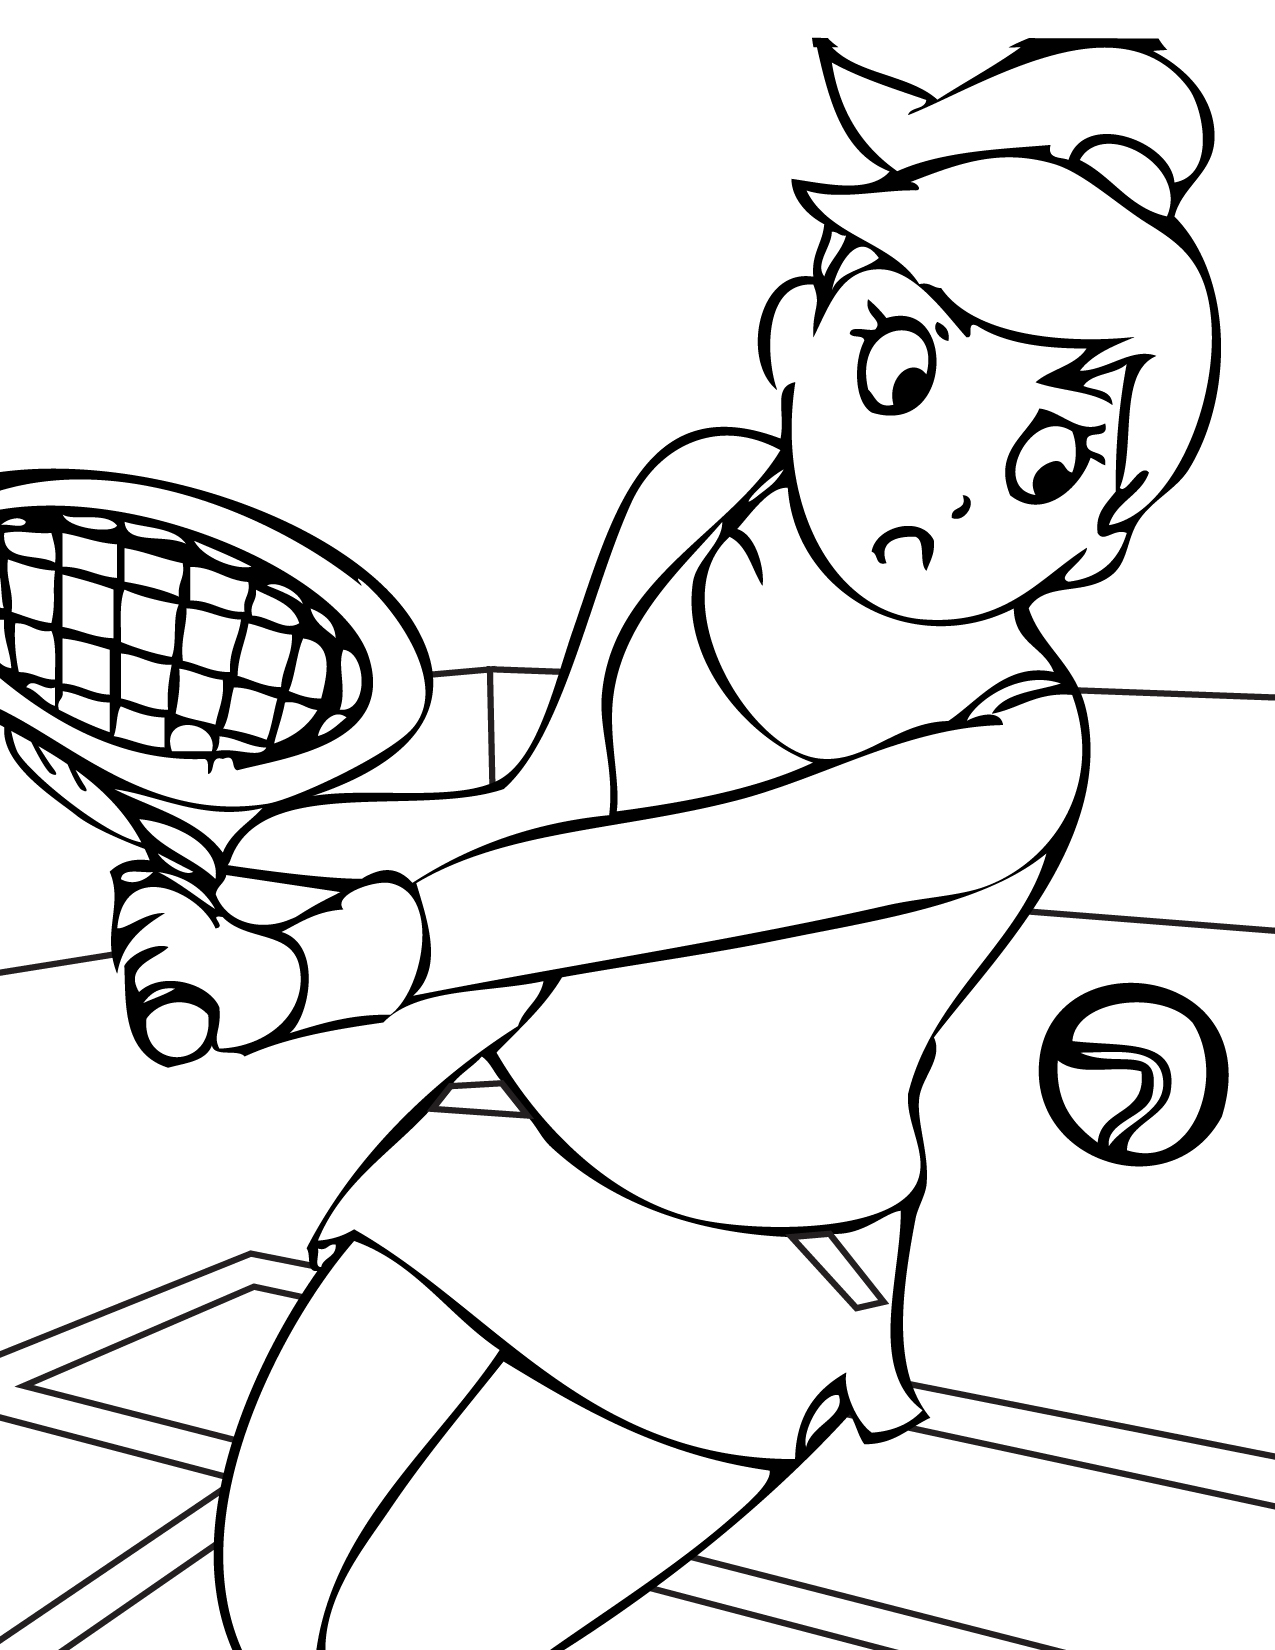 sports coloring pages for kindergarten free printable online sports coloring pages for. Black Bedroom Furniture Sets. Home Design Ideas